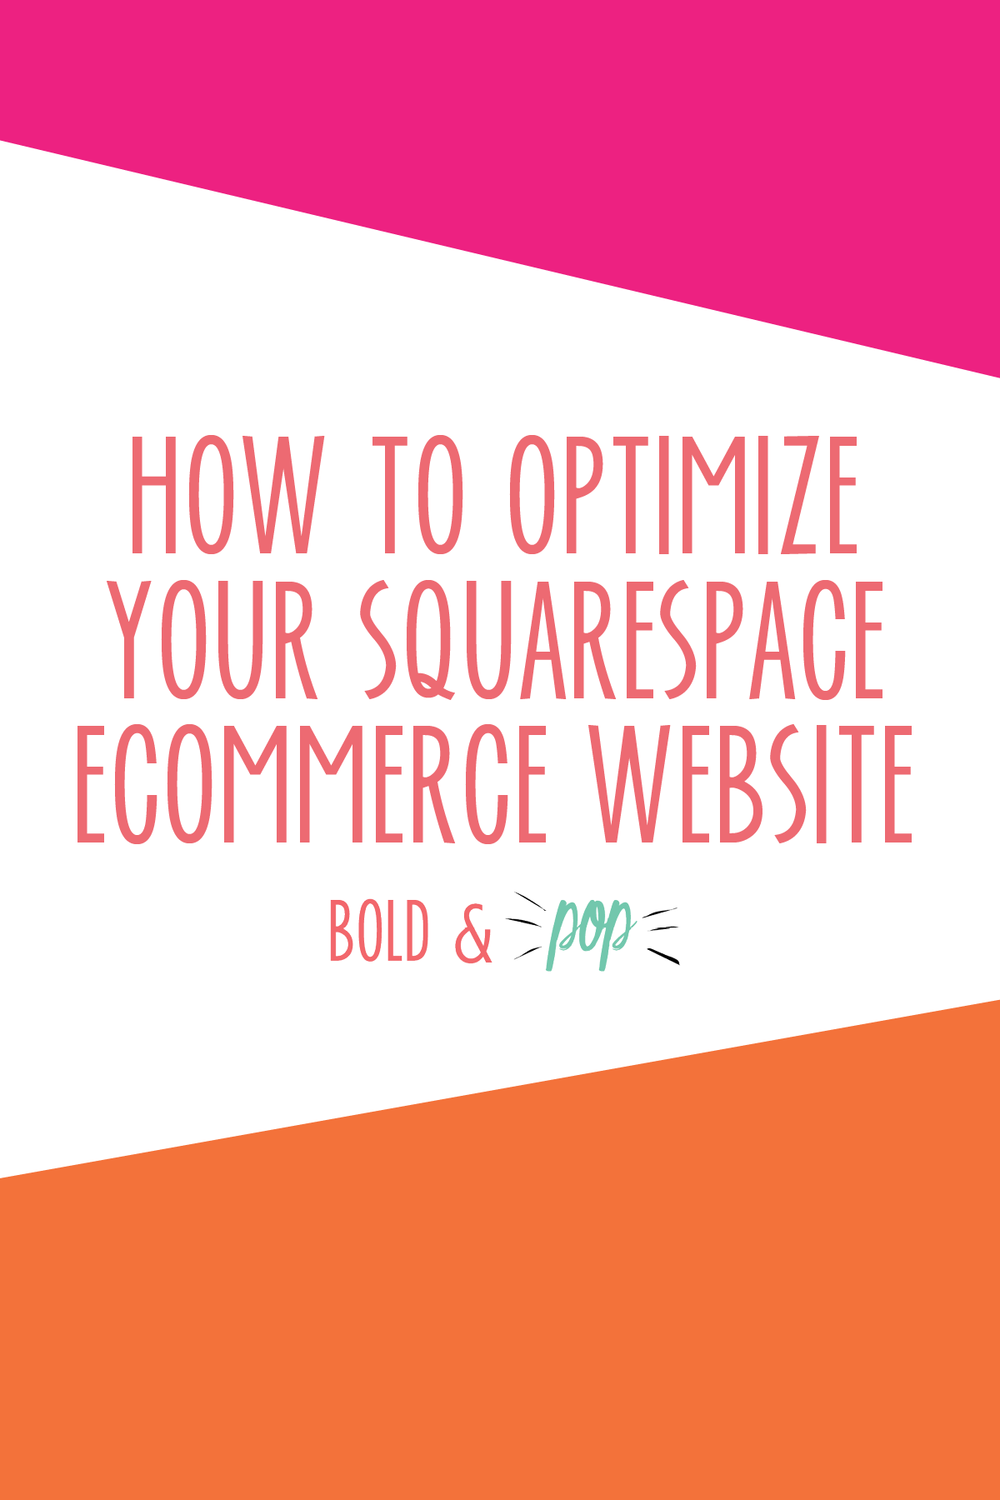 Bold & Pop : How to Optimize your Squarespace Ecommerce Website